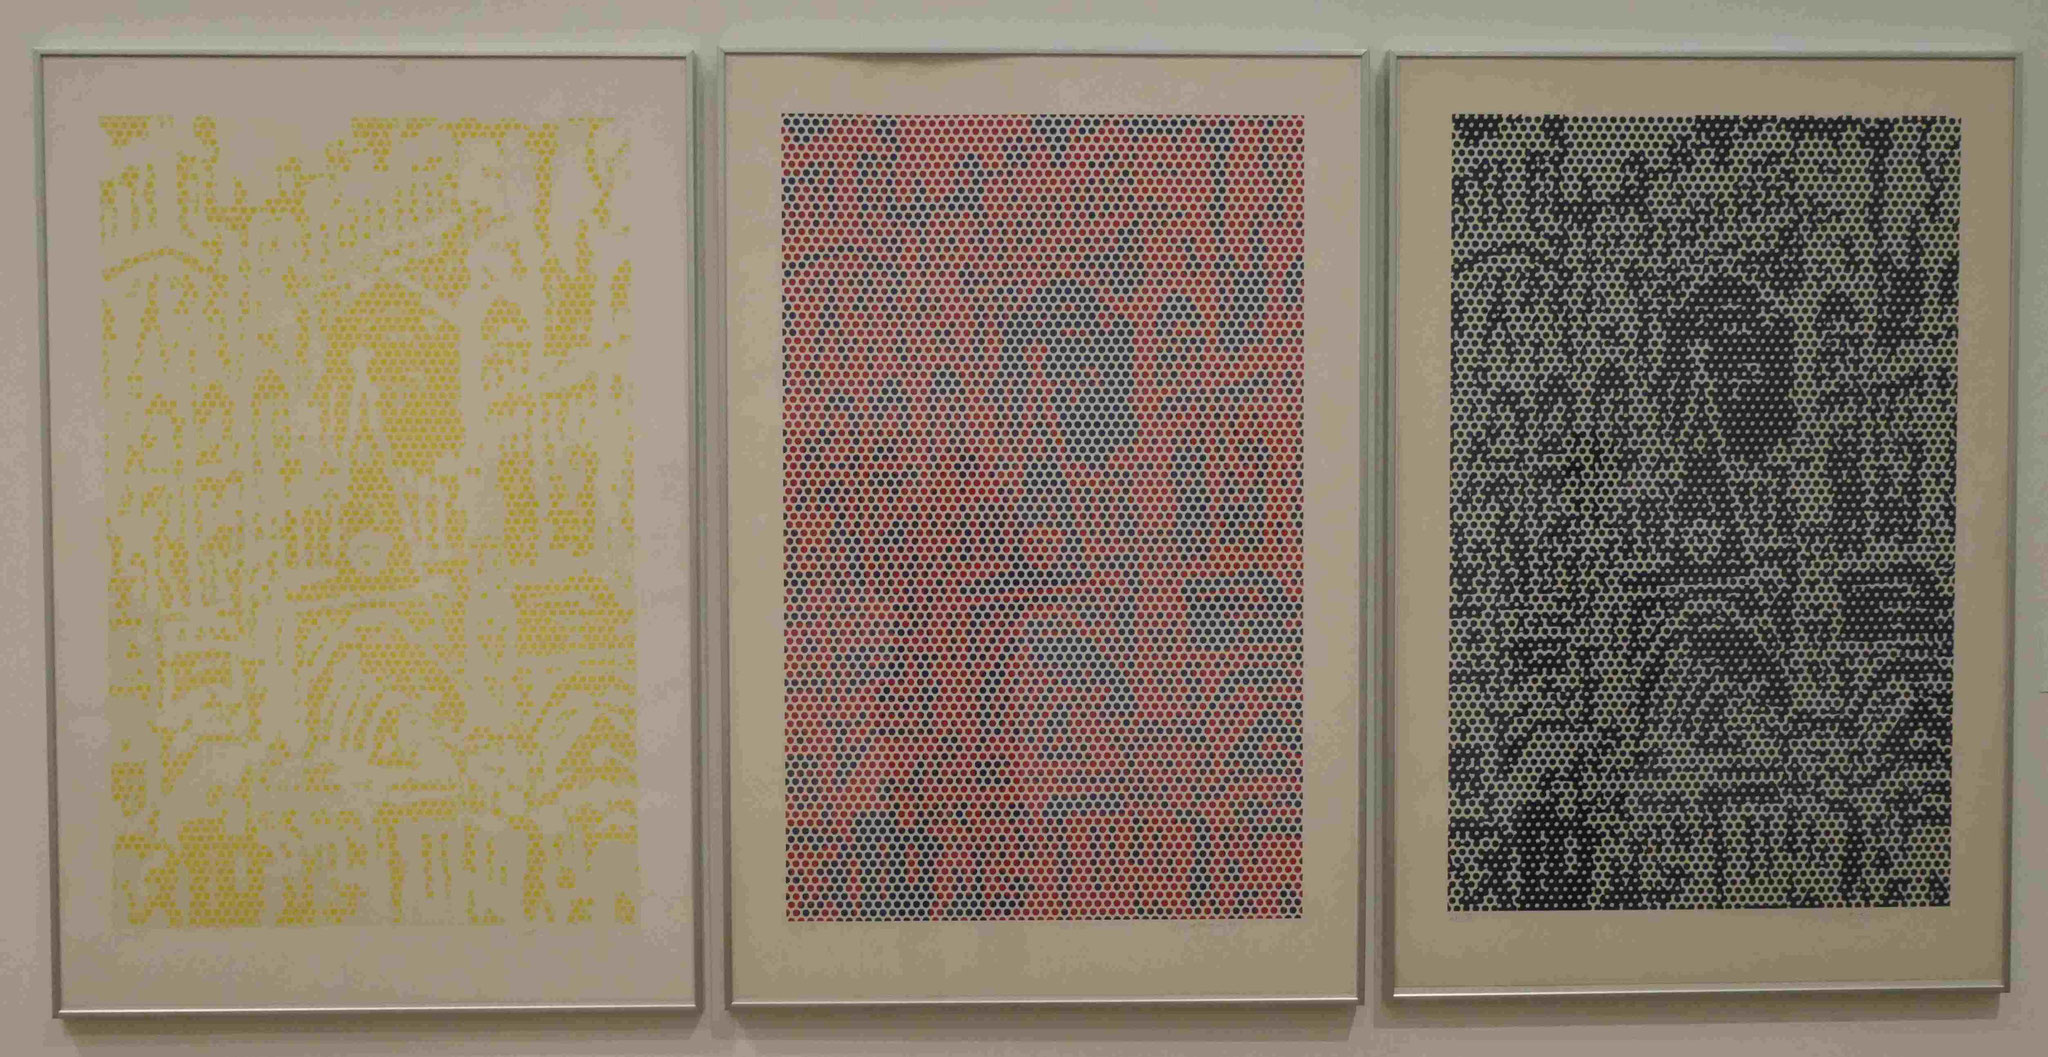 Roy Lichtenstein, Cathedral #1,#2,#3, Lithographie und Siebdruck, 1969, Nationalgalerie Berlin